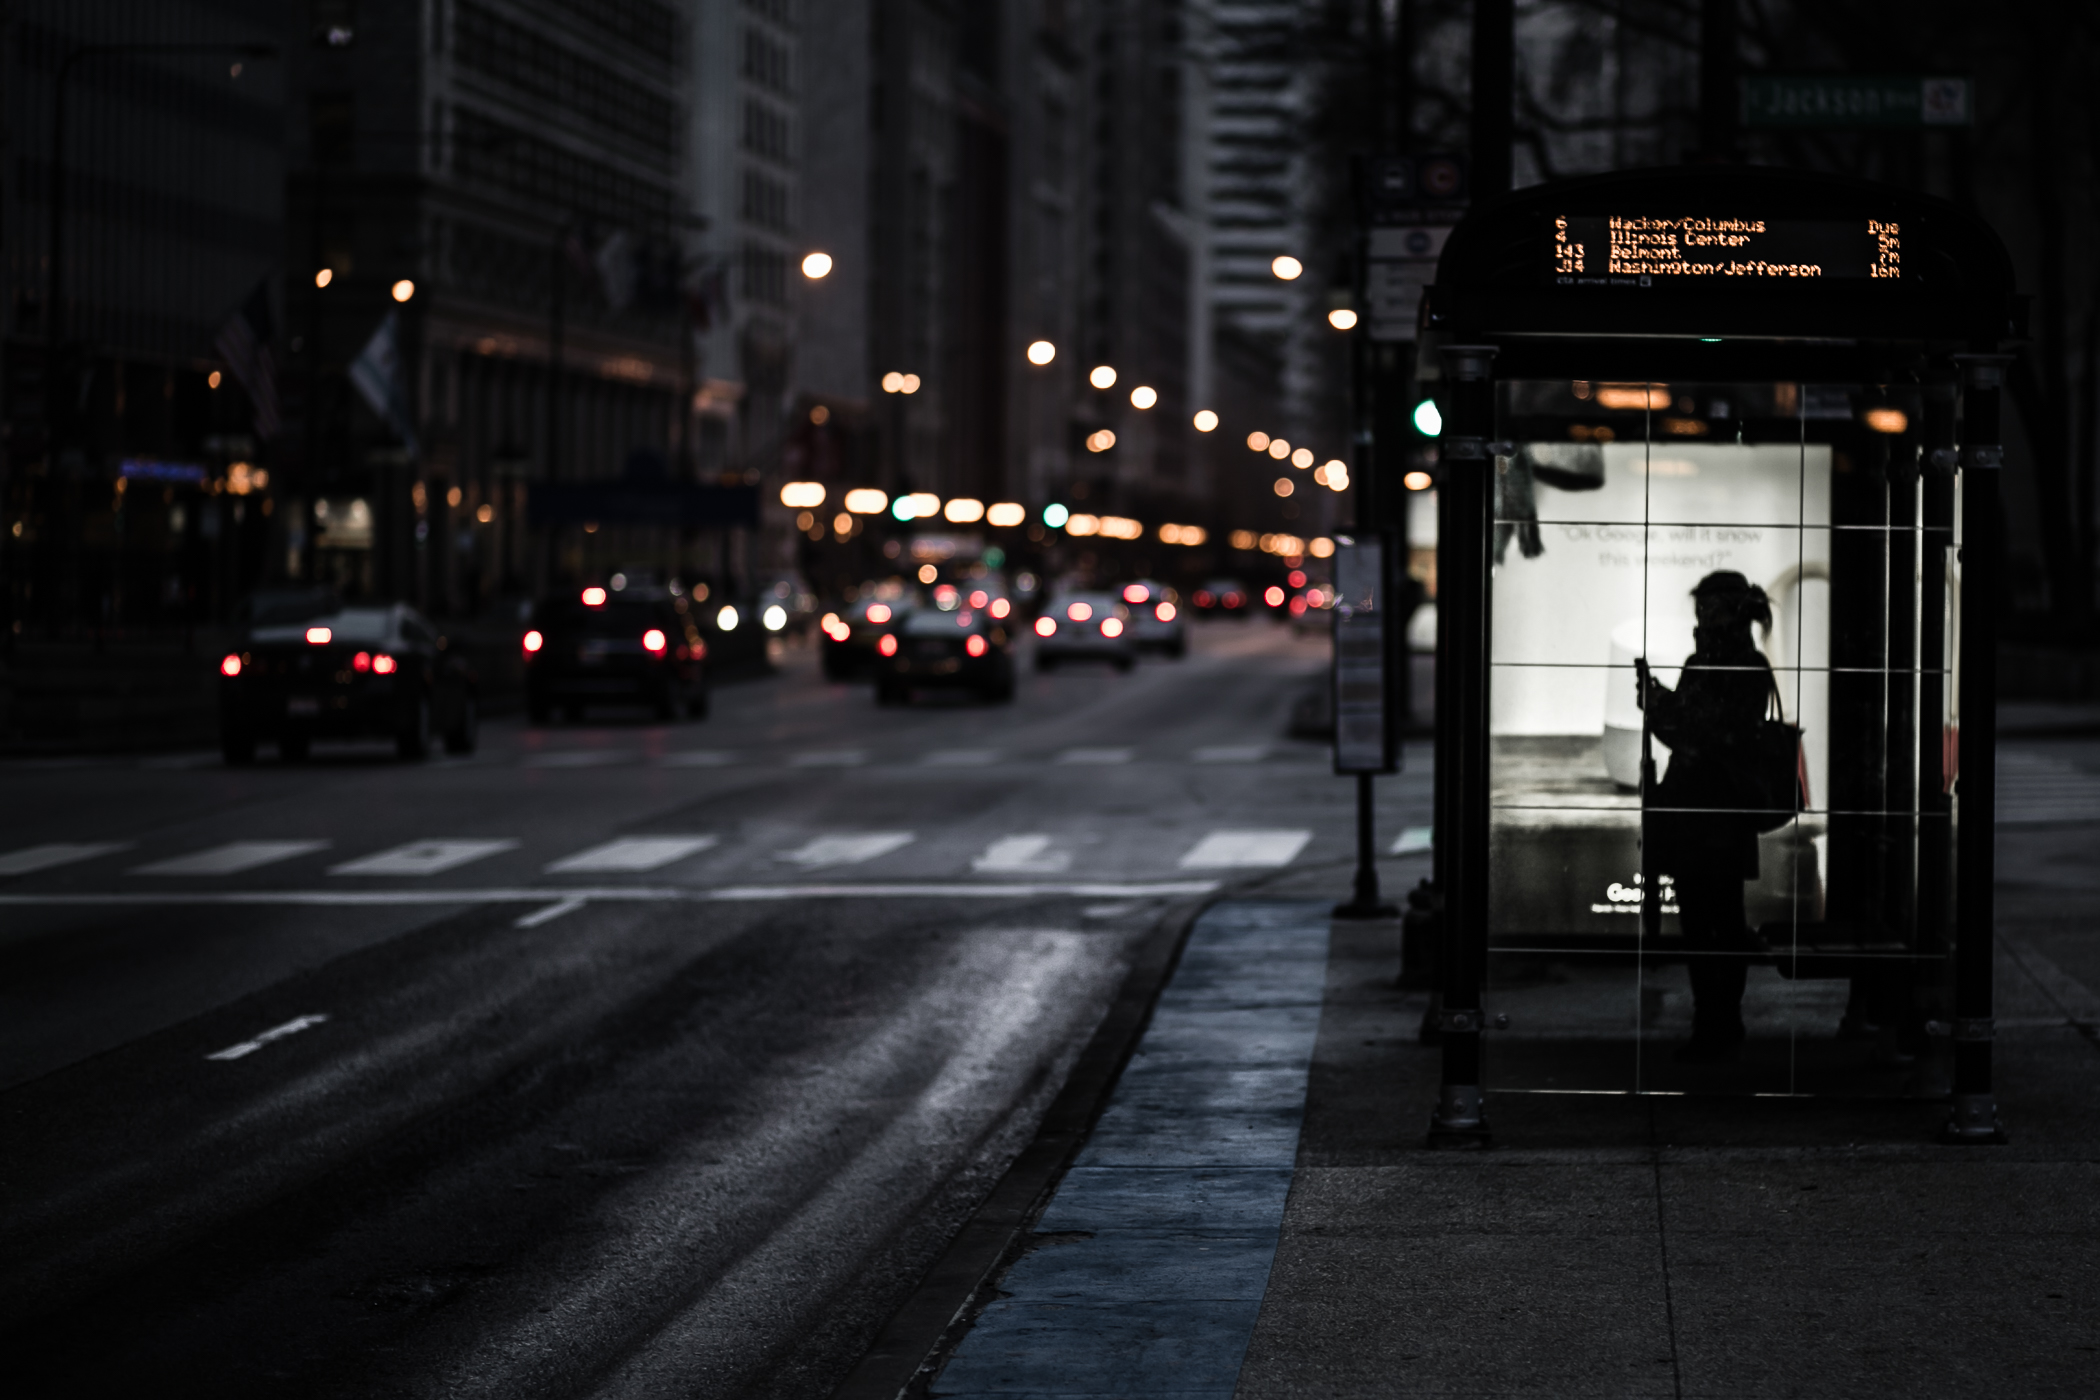 """Standing on the Corner, Waiting for a Bus"""